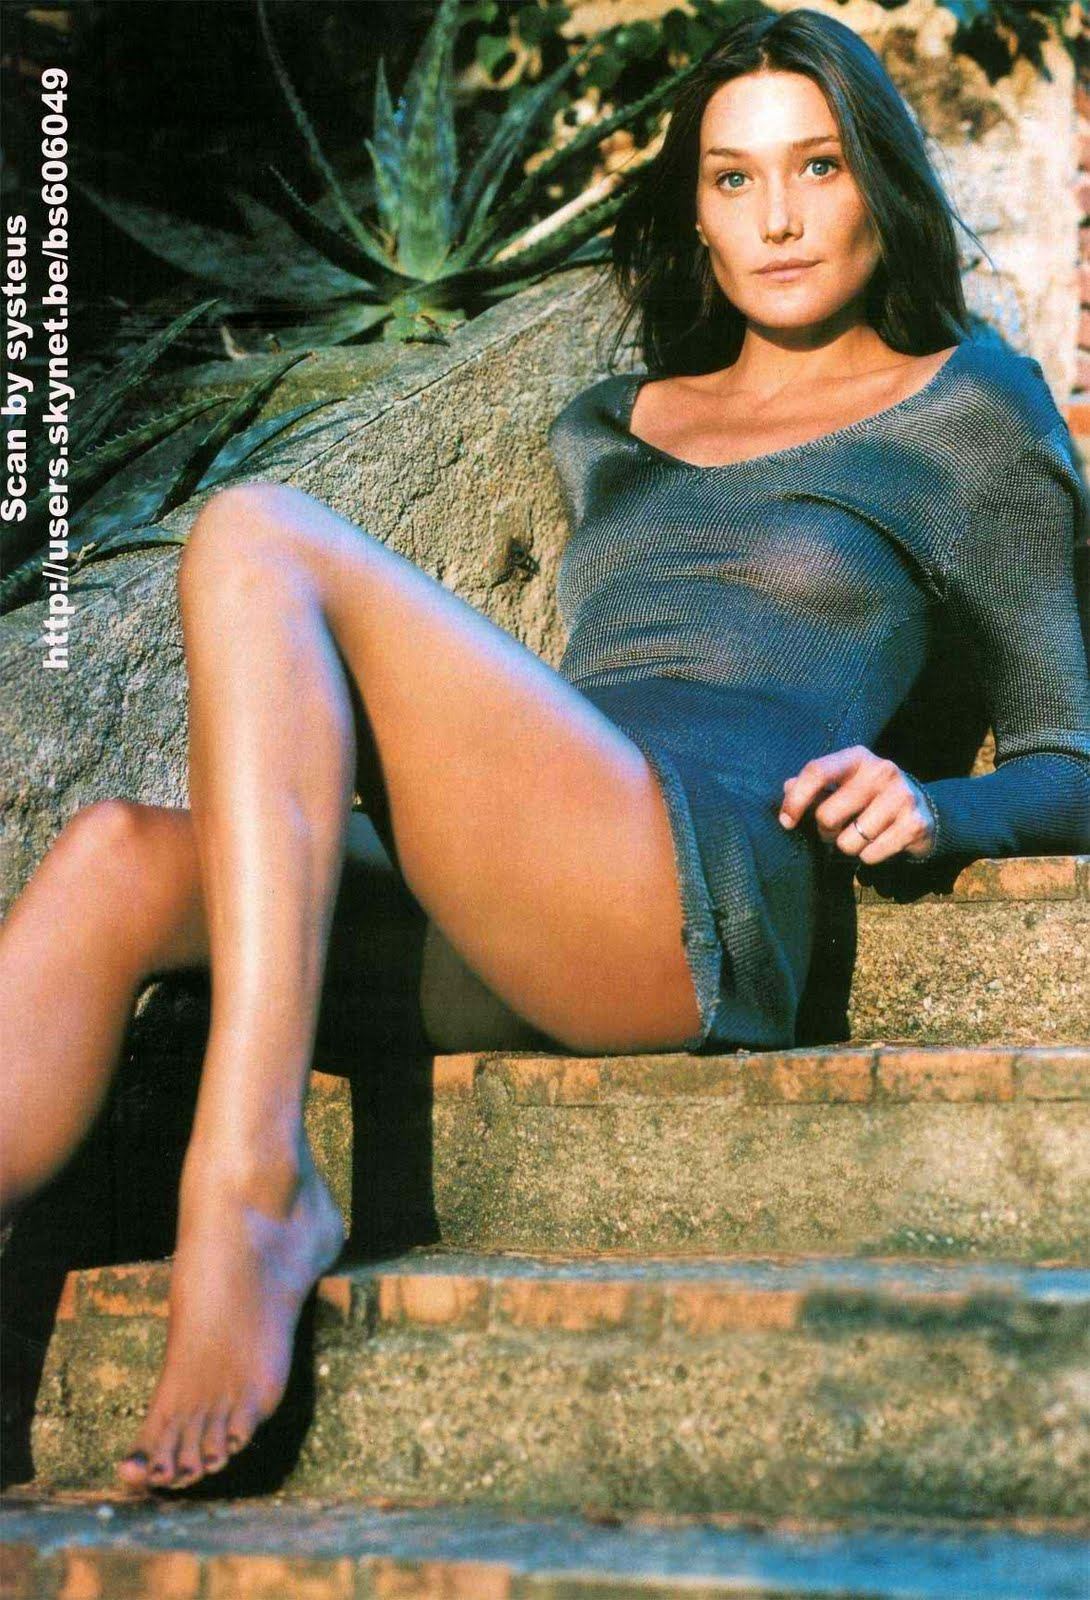 carla bruni hot plastic surgery before and after leaked photos 2012